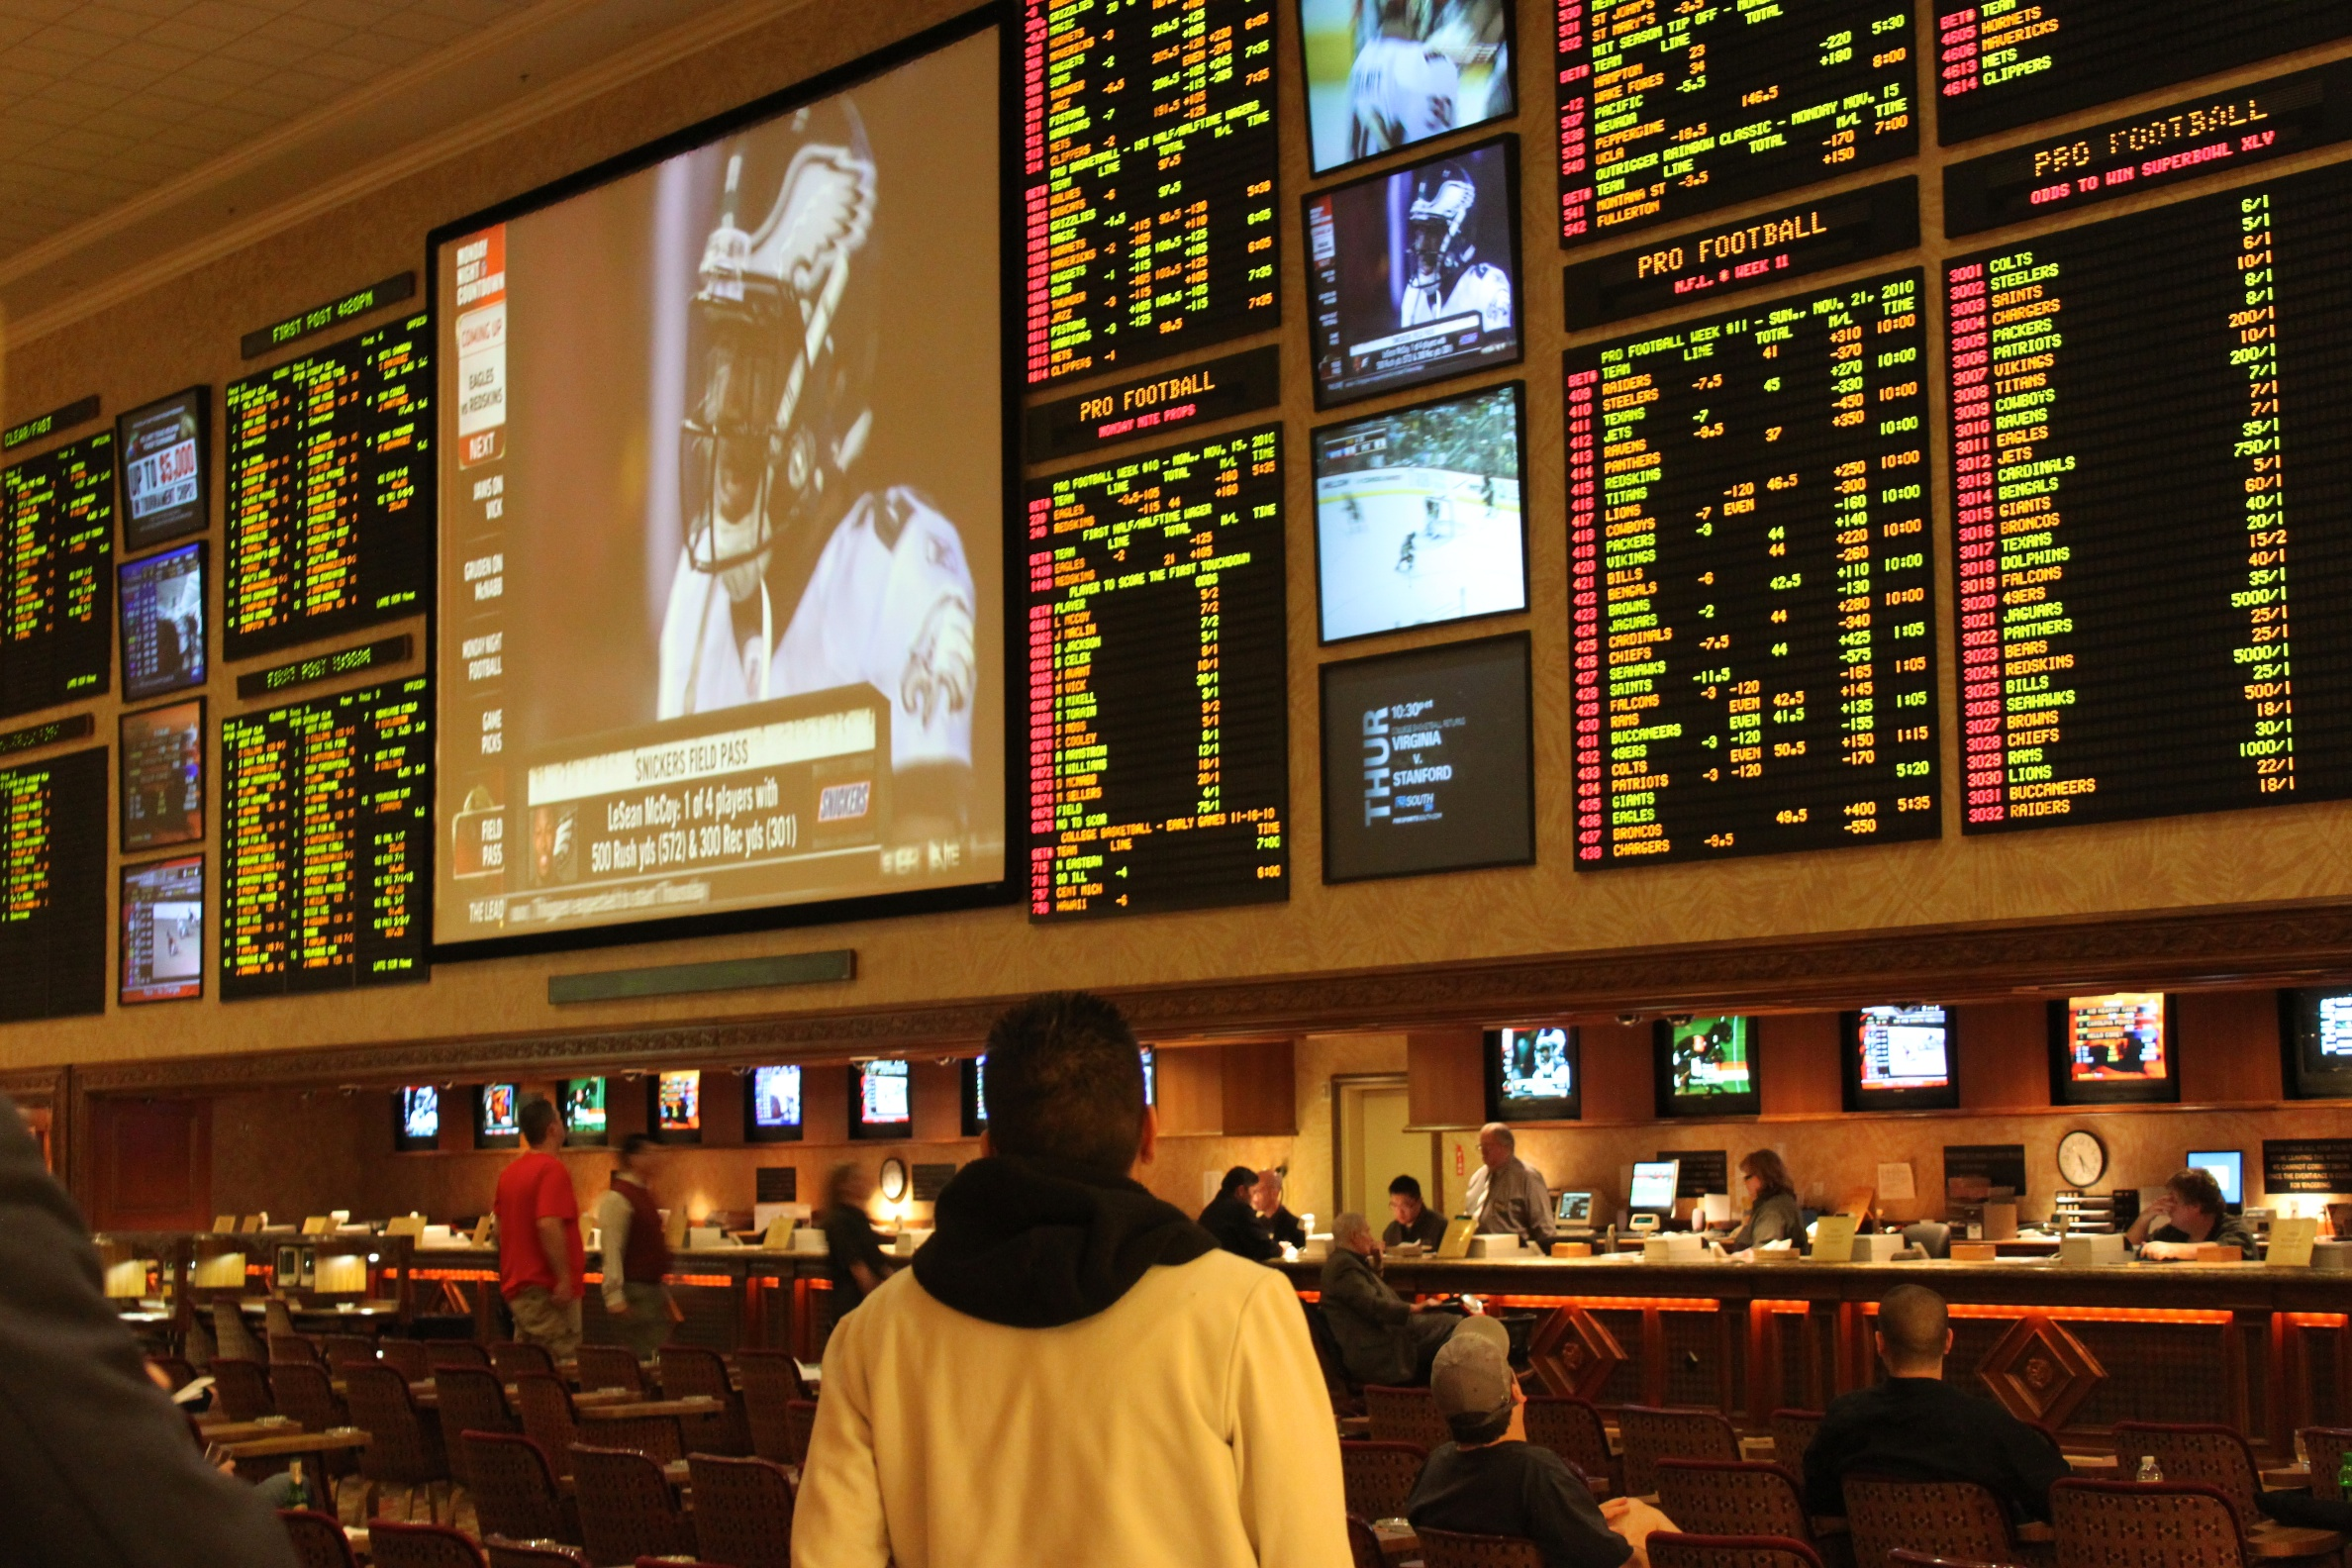 Blackmarket bookmakers: Can users tell the difference?